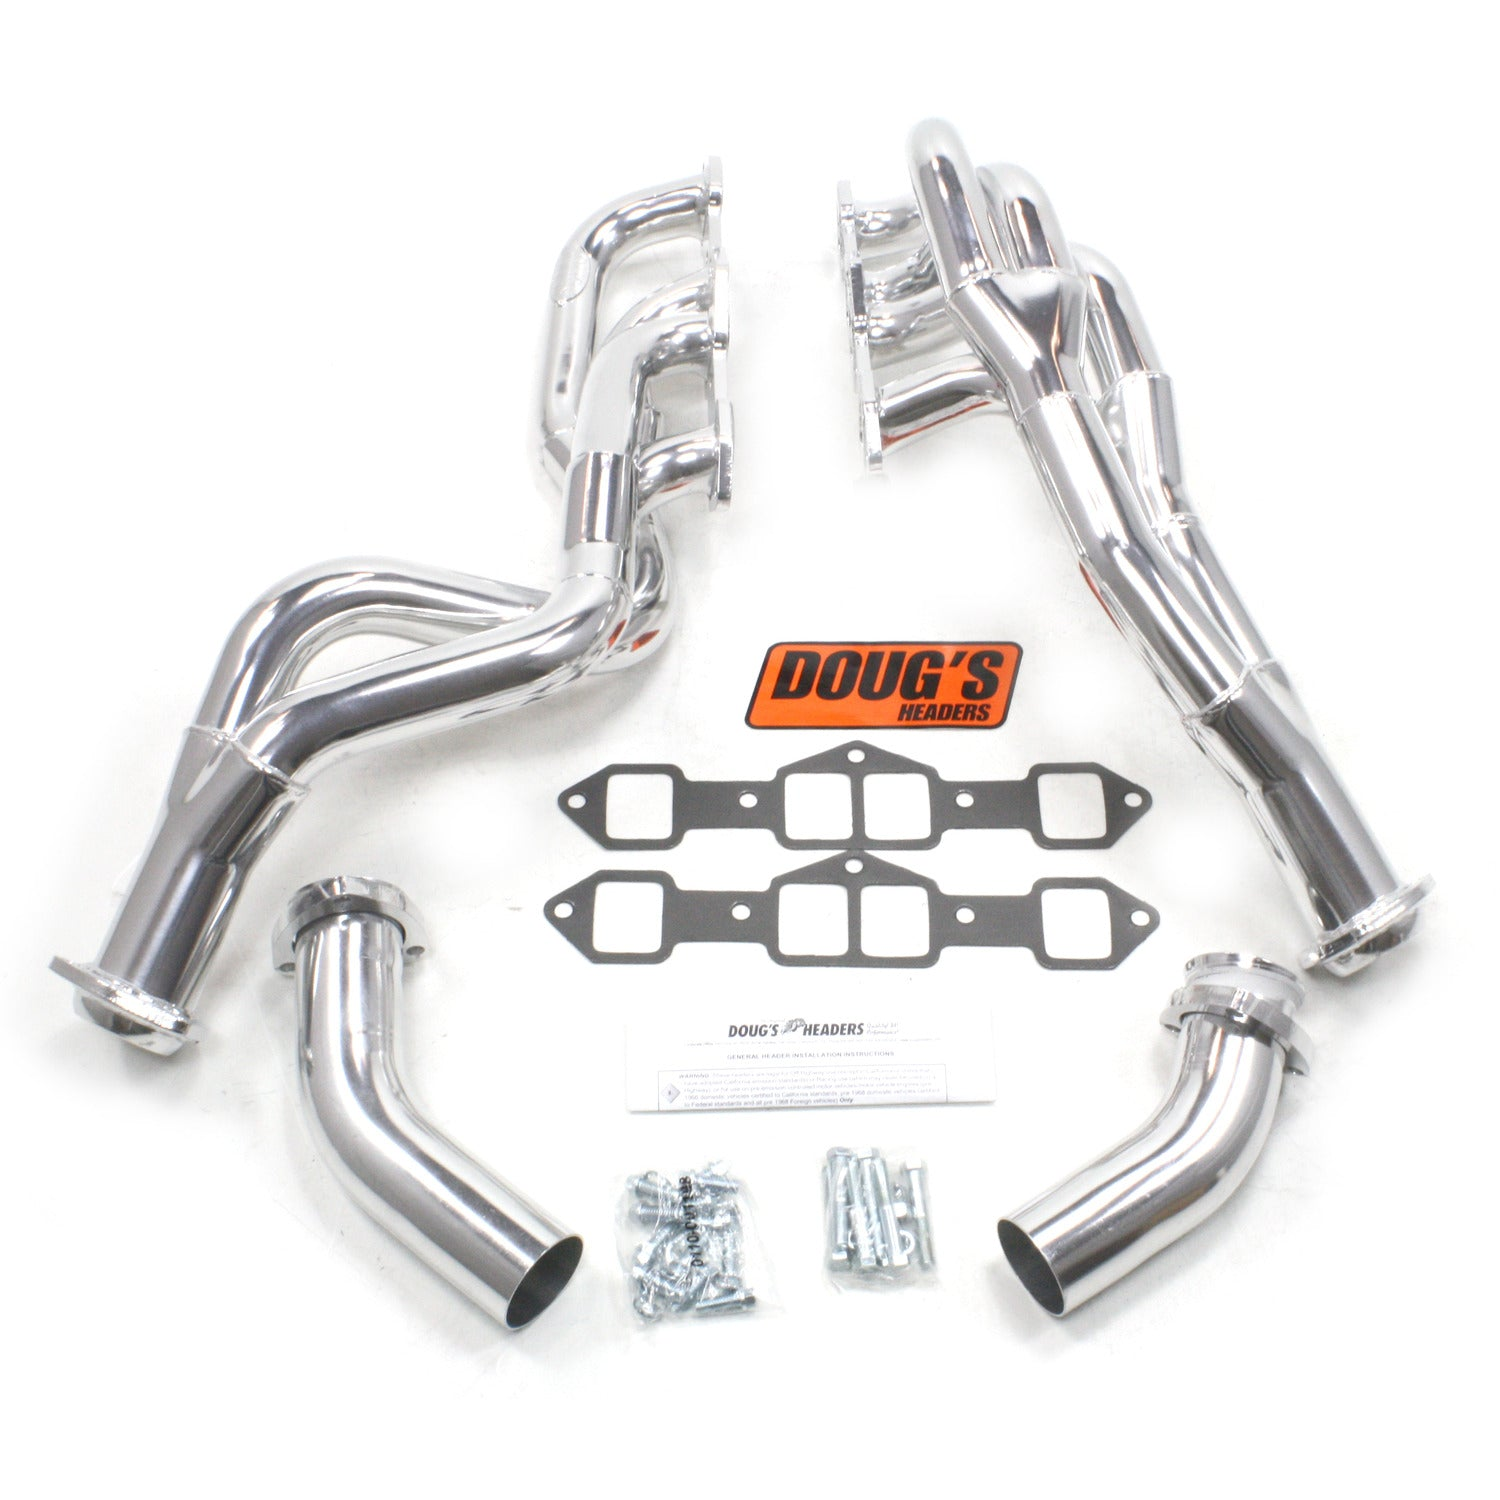 "Doug's Headers D755Y 1 3/4"" Tri-Y Header Oldsmobile Motor Home 455 73-78 Metallic Ceramic Metallic Ceramic Coating"